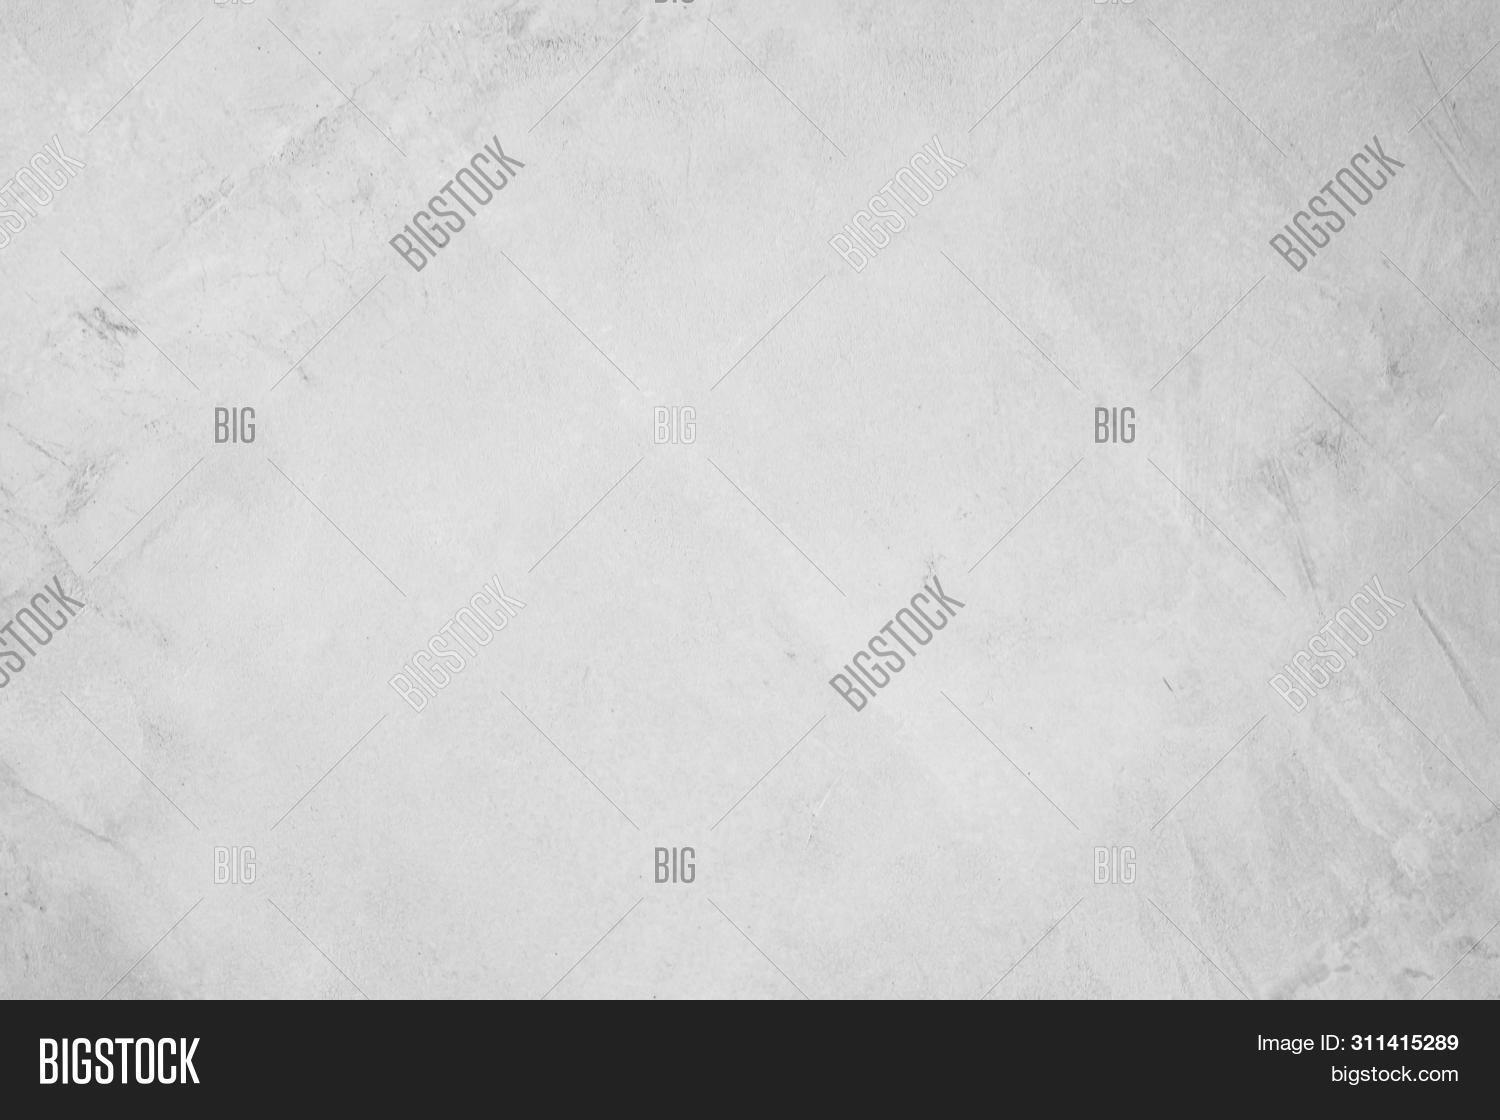 abstract,aged,ancient,architecture,backdrop,background,black,blank,building,cement,classic,closeup,color,concrete,construction,cracked,dark,design,detail,dirty,dot,exterior,floor,gray,grey,grunge,home,material,modern,mottled,obsolete,old,pattern,plaster,rough,space,stained,stone,structure,stucco,suitable,surface,texture,textured,vintage,wall,wallpaper,weathered,white